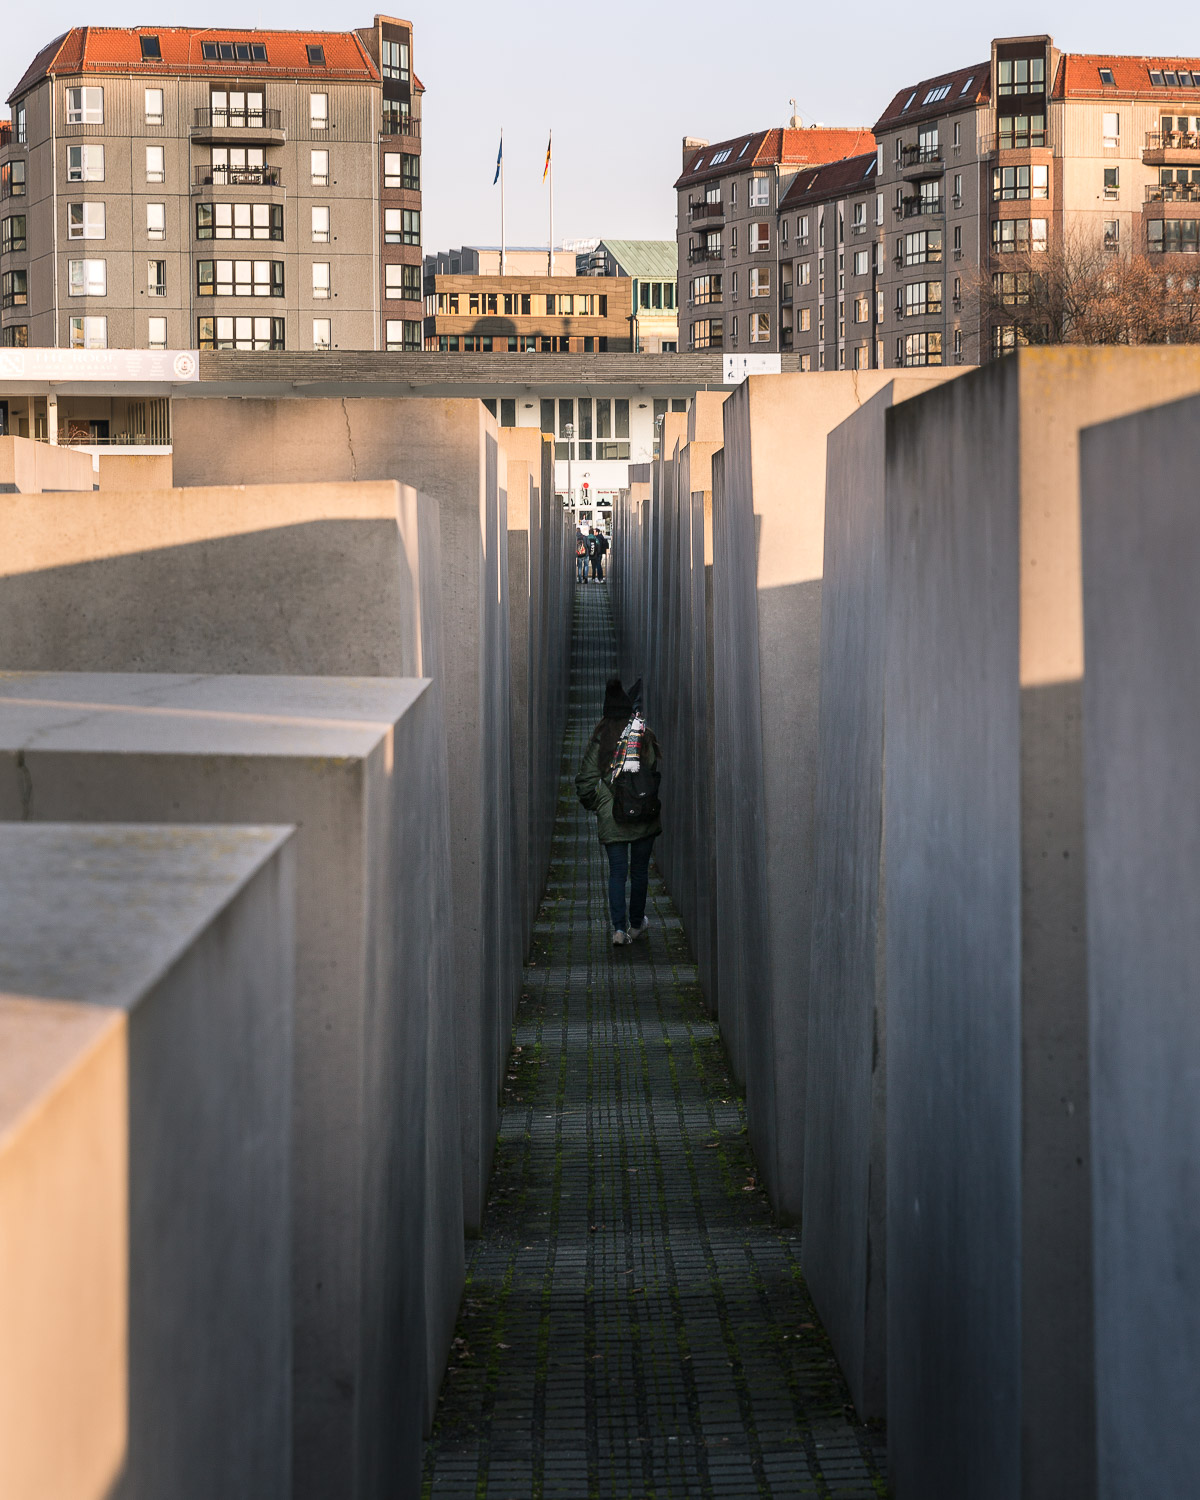 Murdered Jews Memorial Berlin Germany